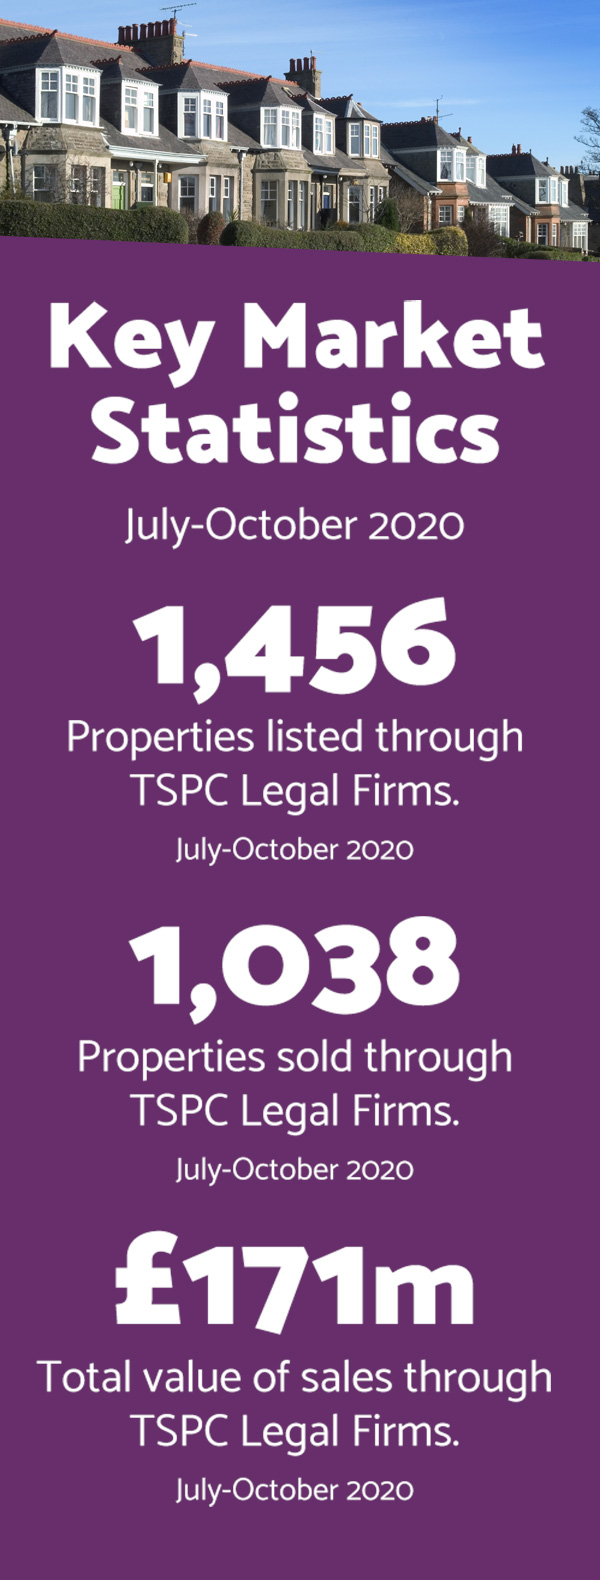 TSPC 2020 Market Statistics - Over 1,000 properties sold July to October.